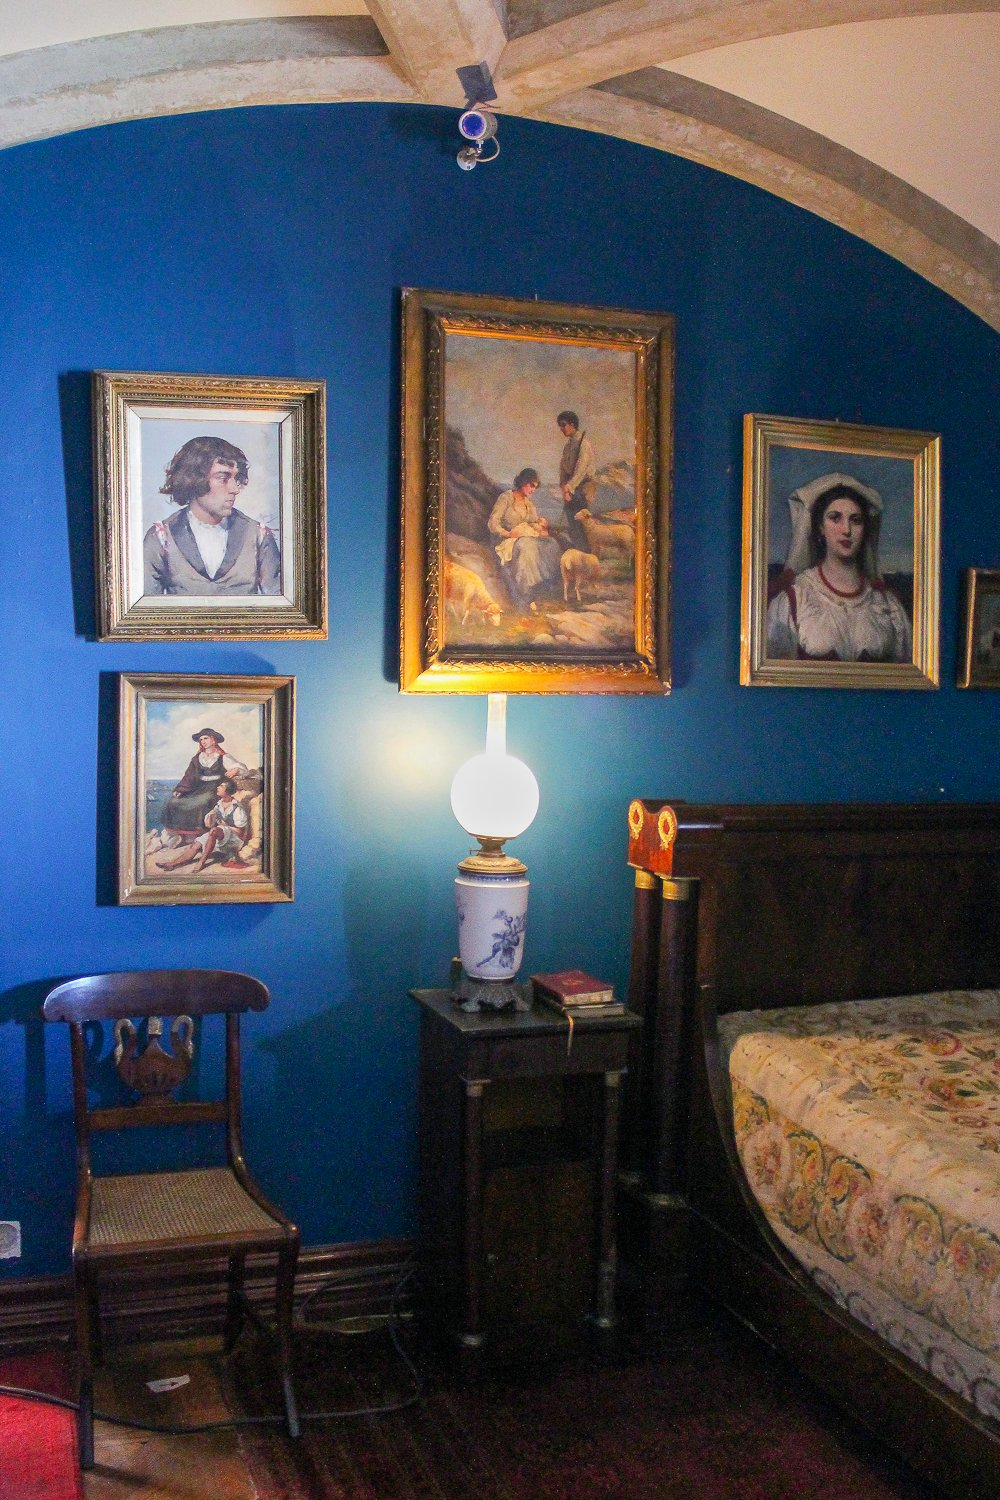 Blue bedroom with paintings